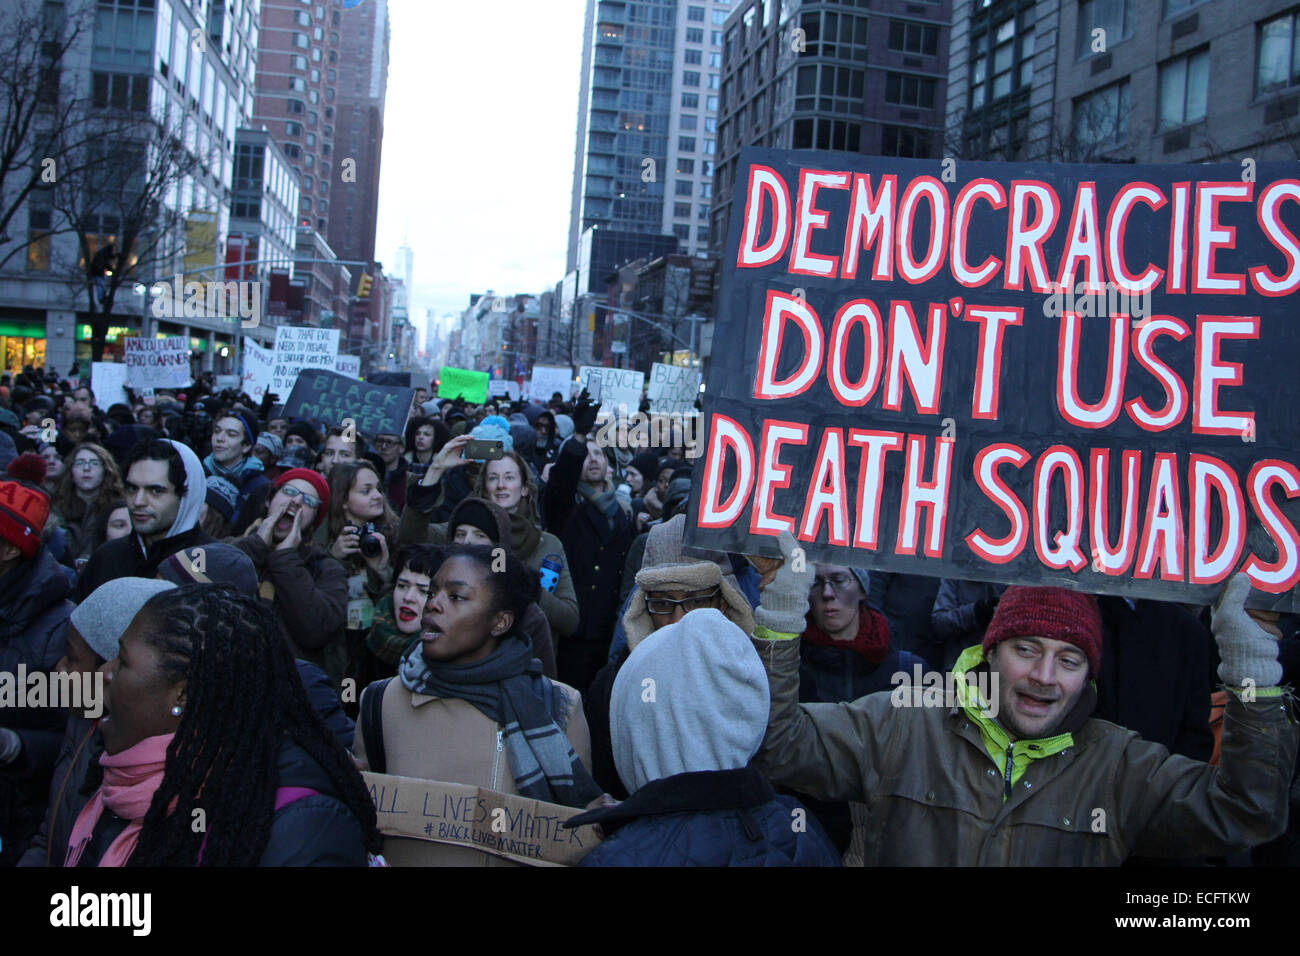 NEW YORK, NEW YORK - DECEMBER 13: Thousands of demonstrators gather march up 6th Avenue in midtown during Millions - Stock Image